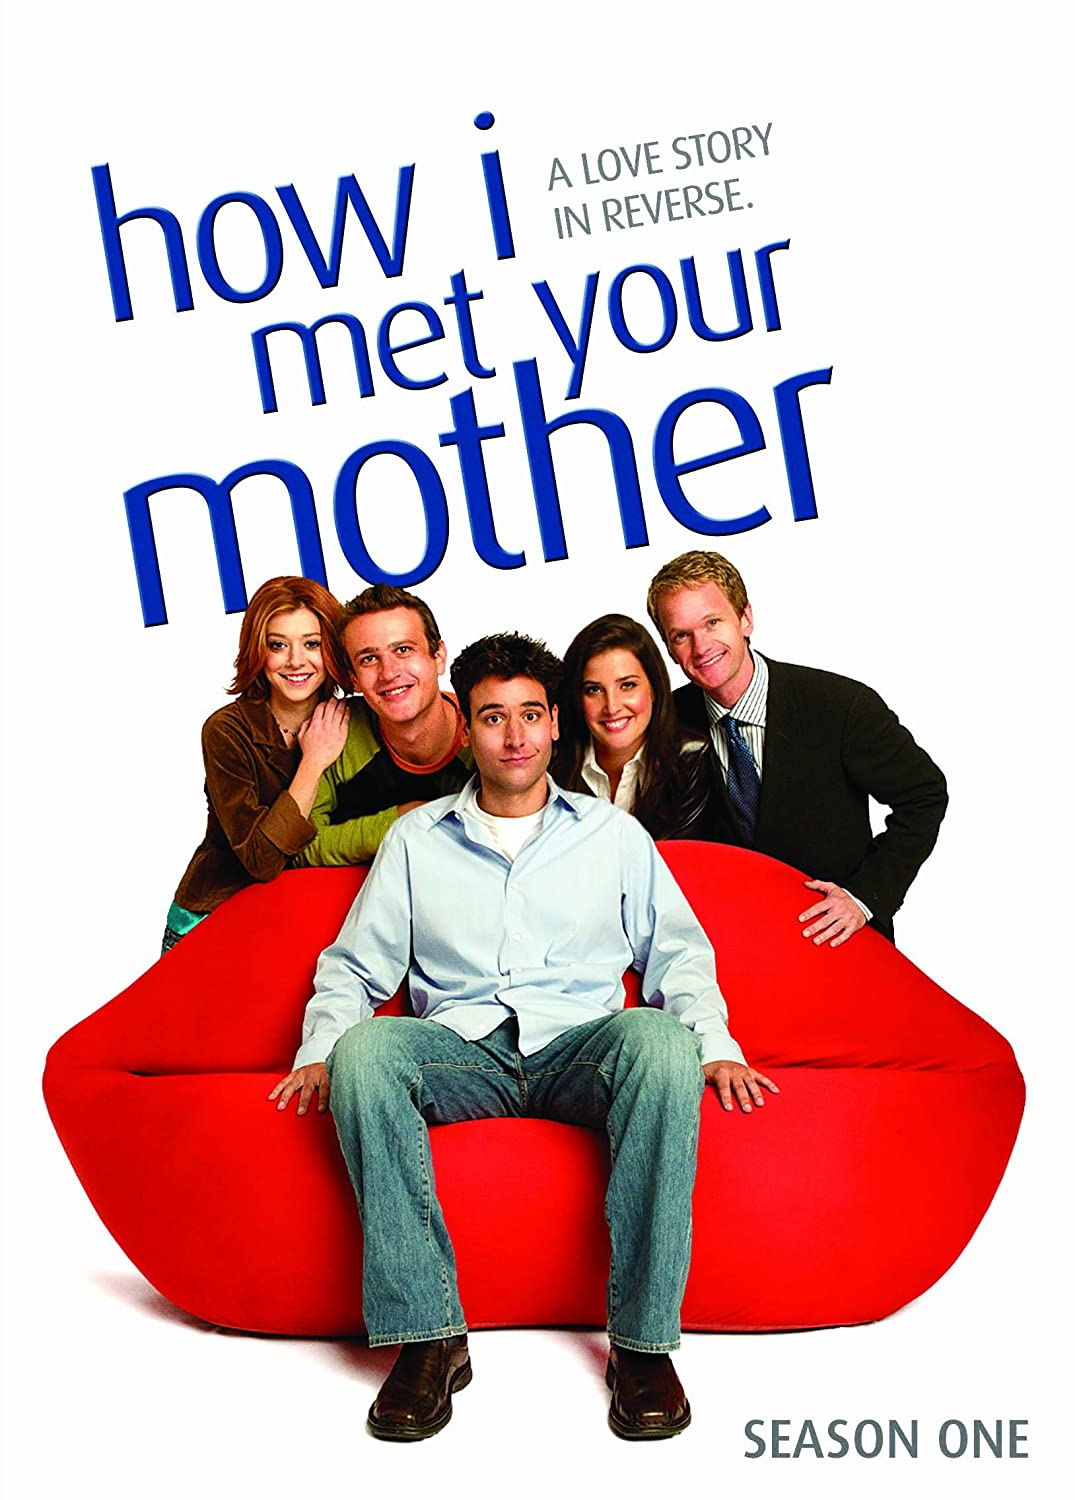 Poster della serie How I met your mother, dimensioni: ca. 30,48 x 20,32 cm